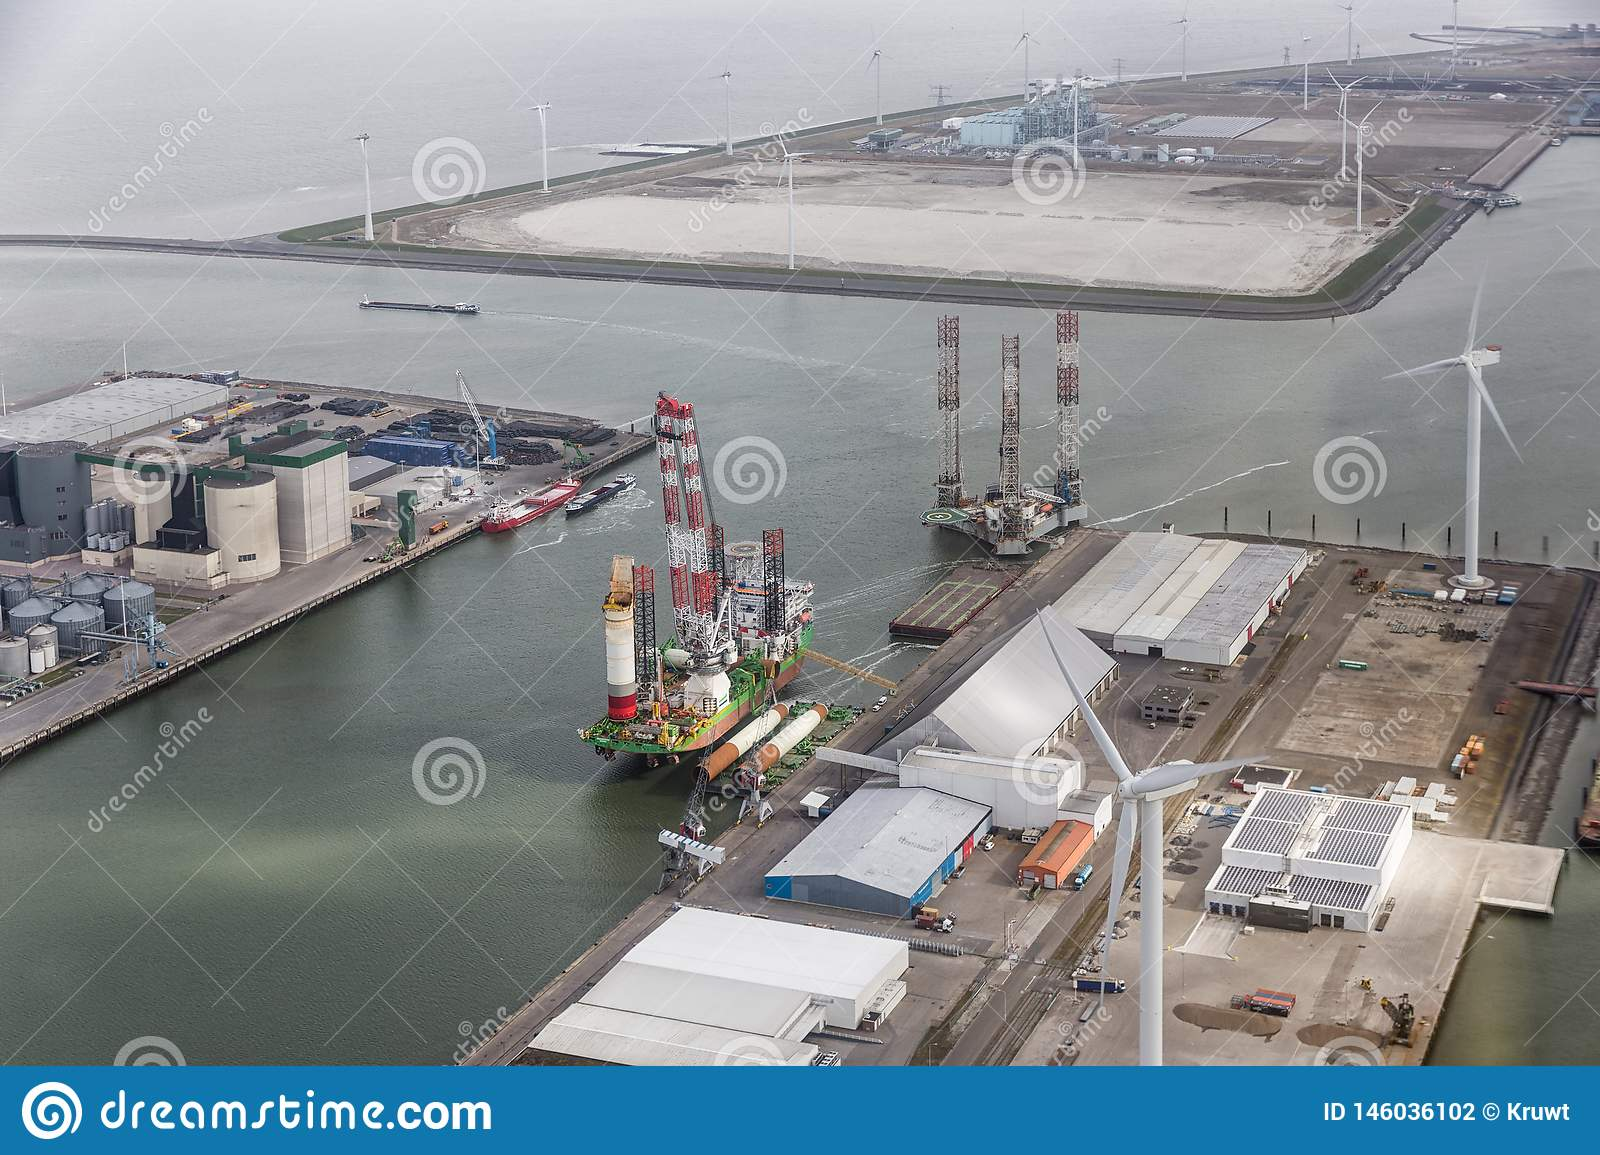 Dutch harbor Eemshaven with wind turbines and offshore construction platforms